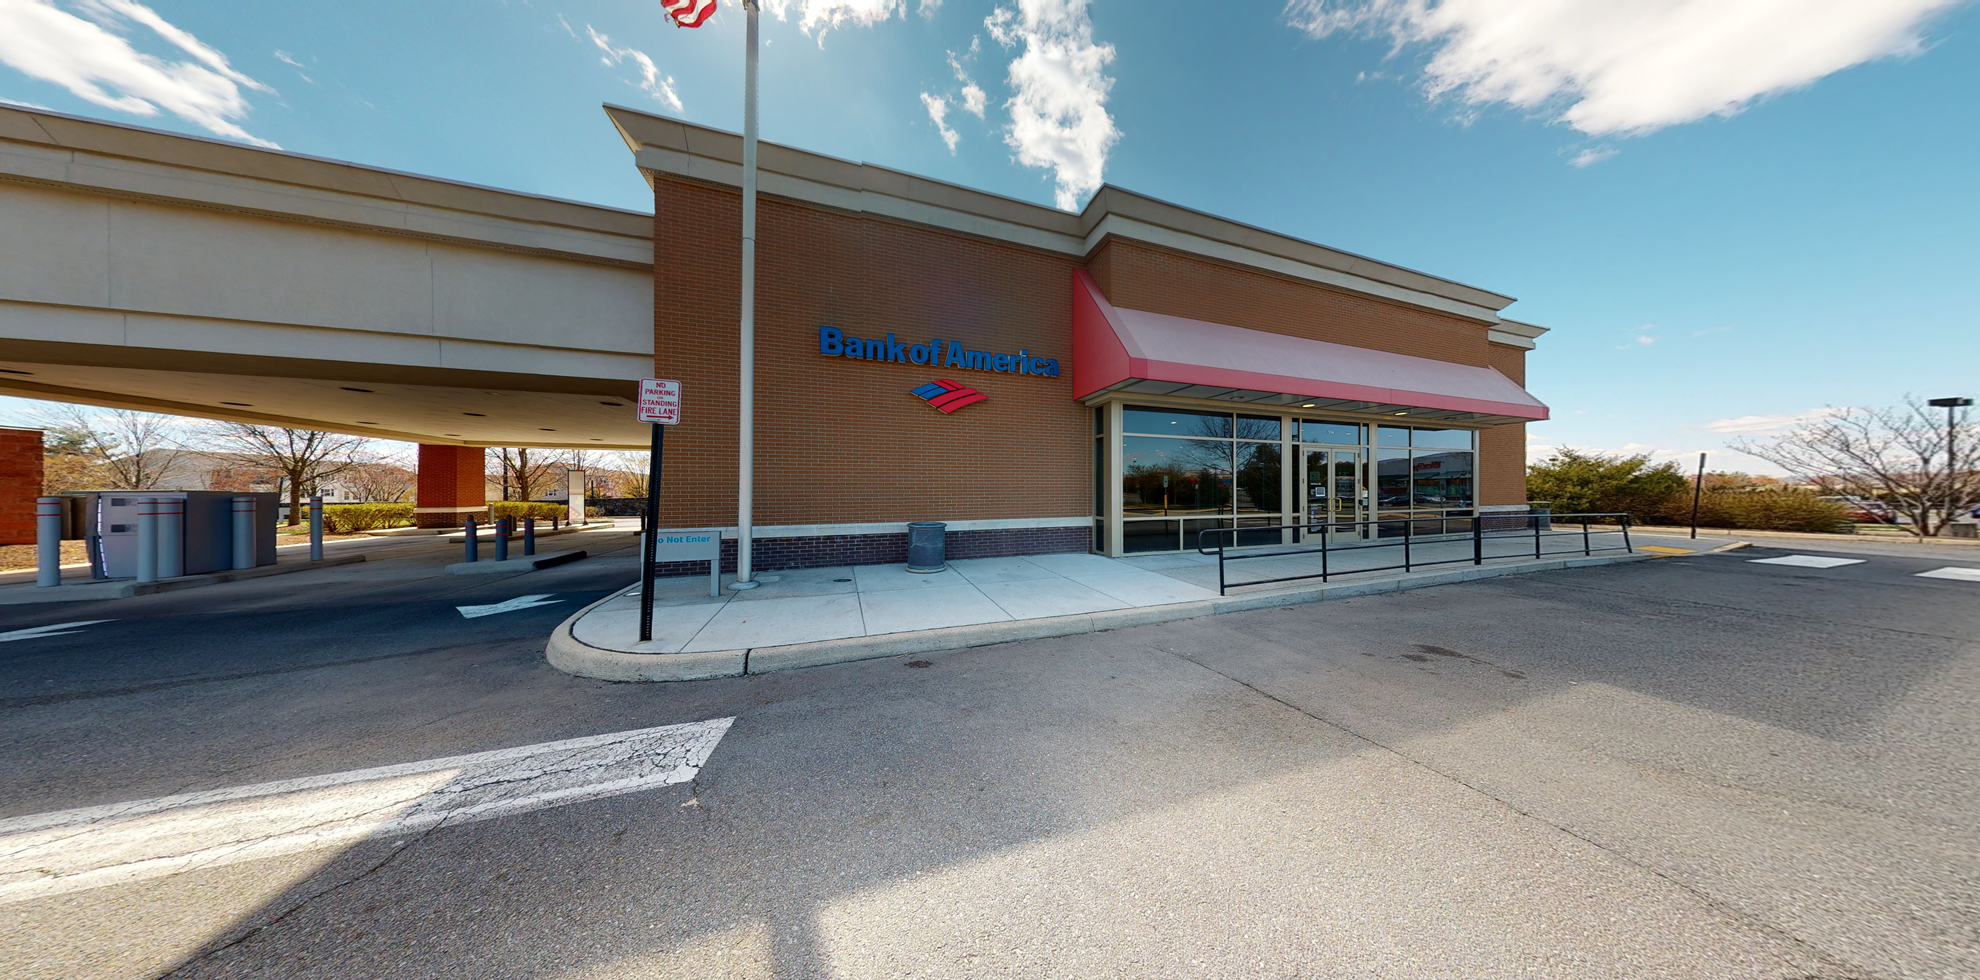 Bank of America financial center with drive-thru ATM | 554 Fort Evans Rd, Leesburg, VA 20176